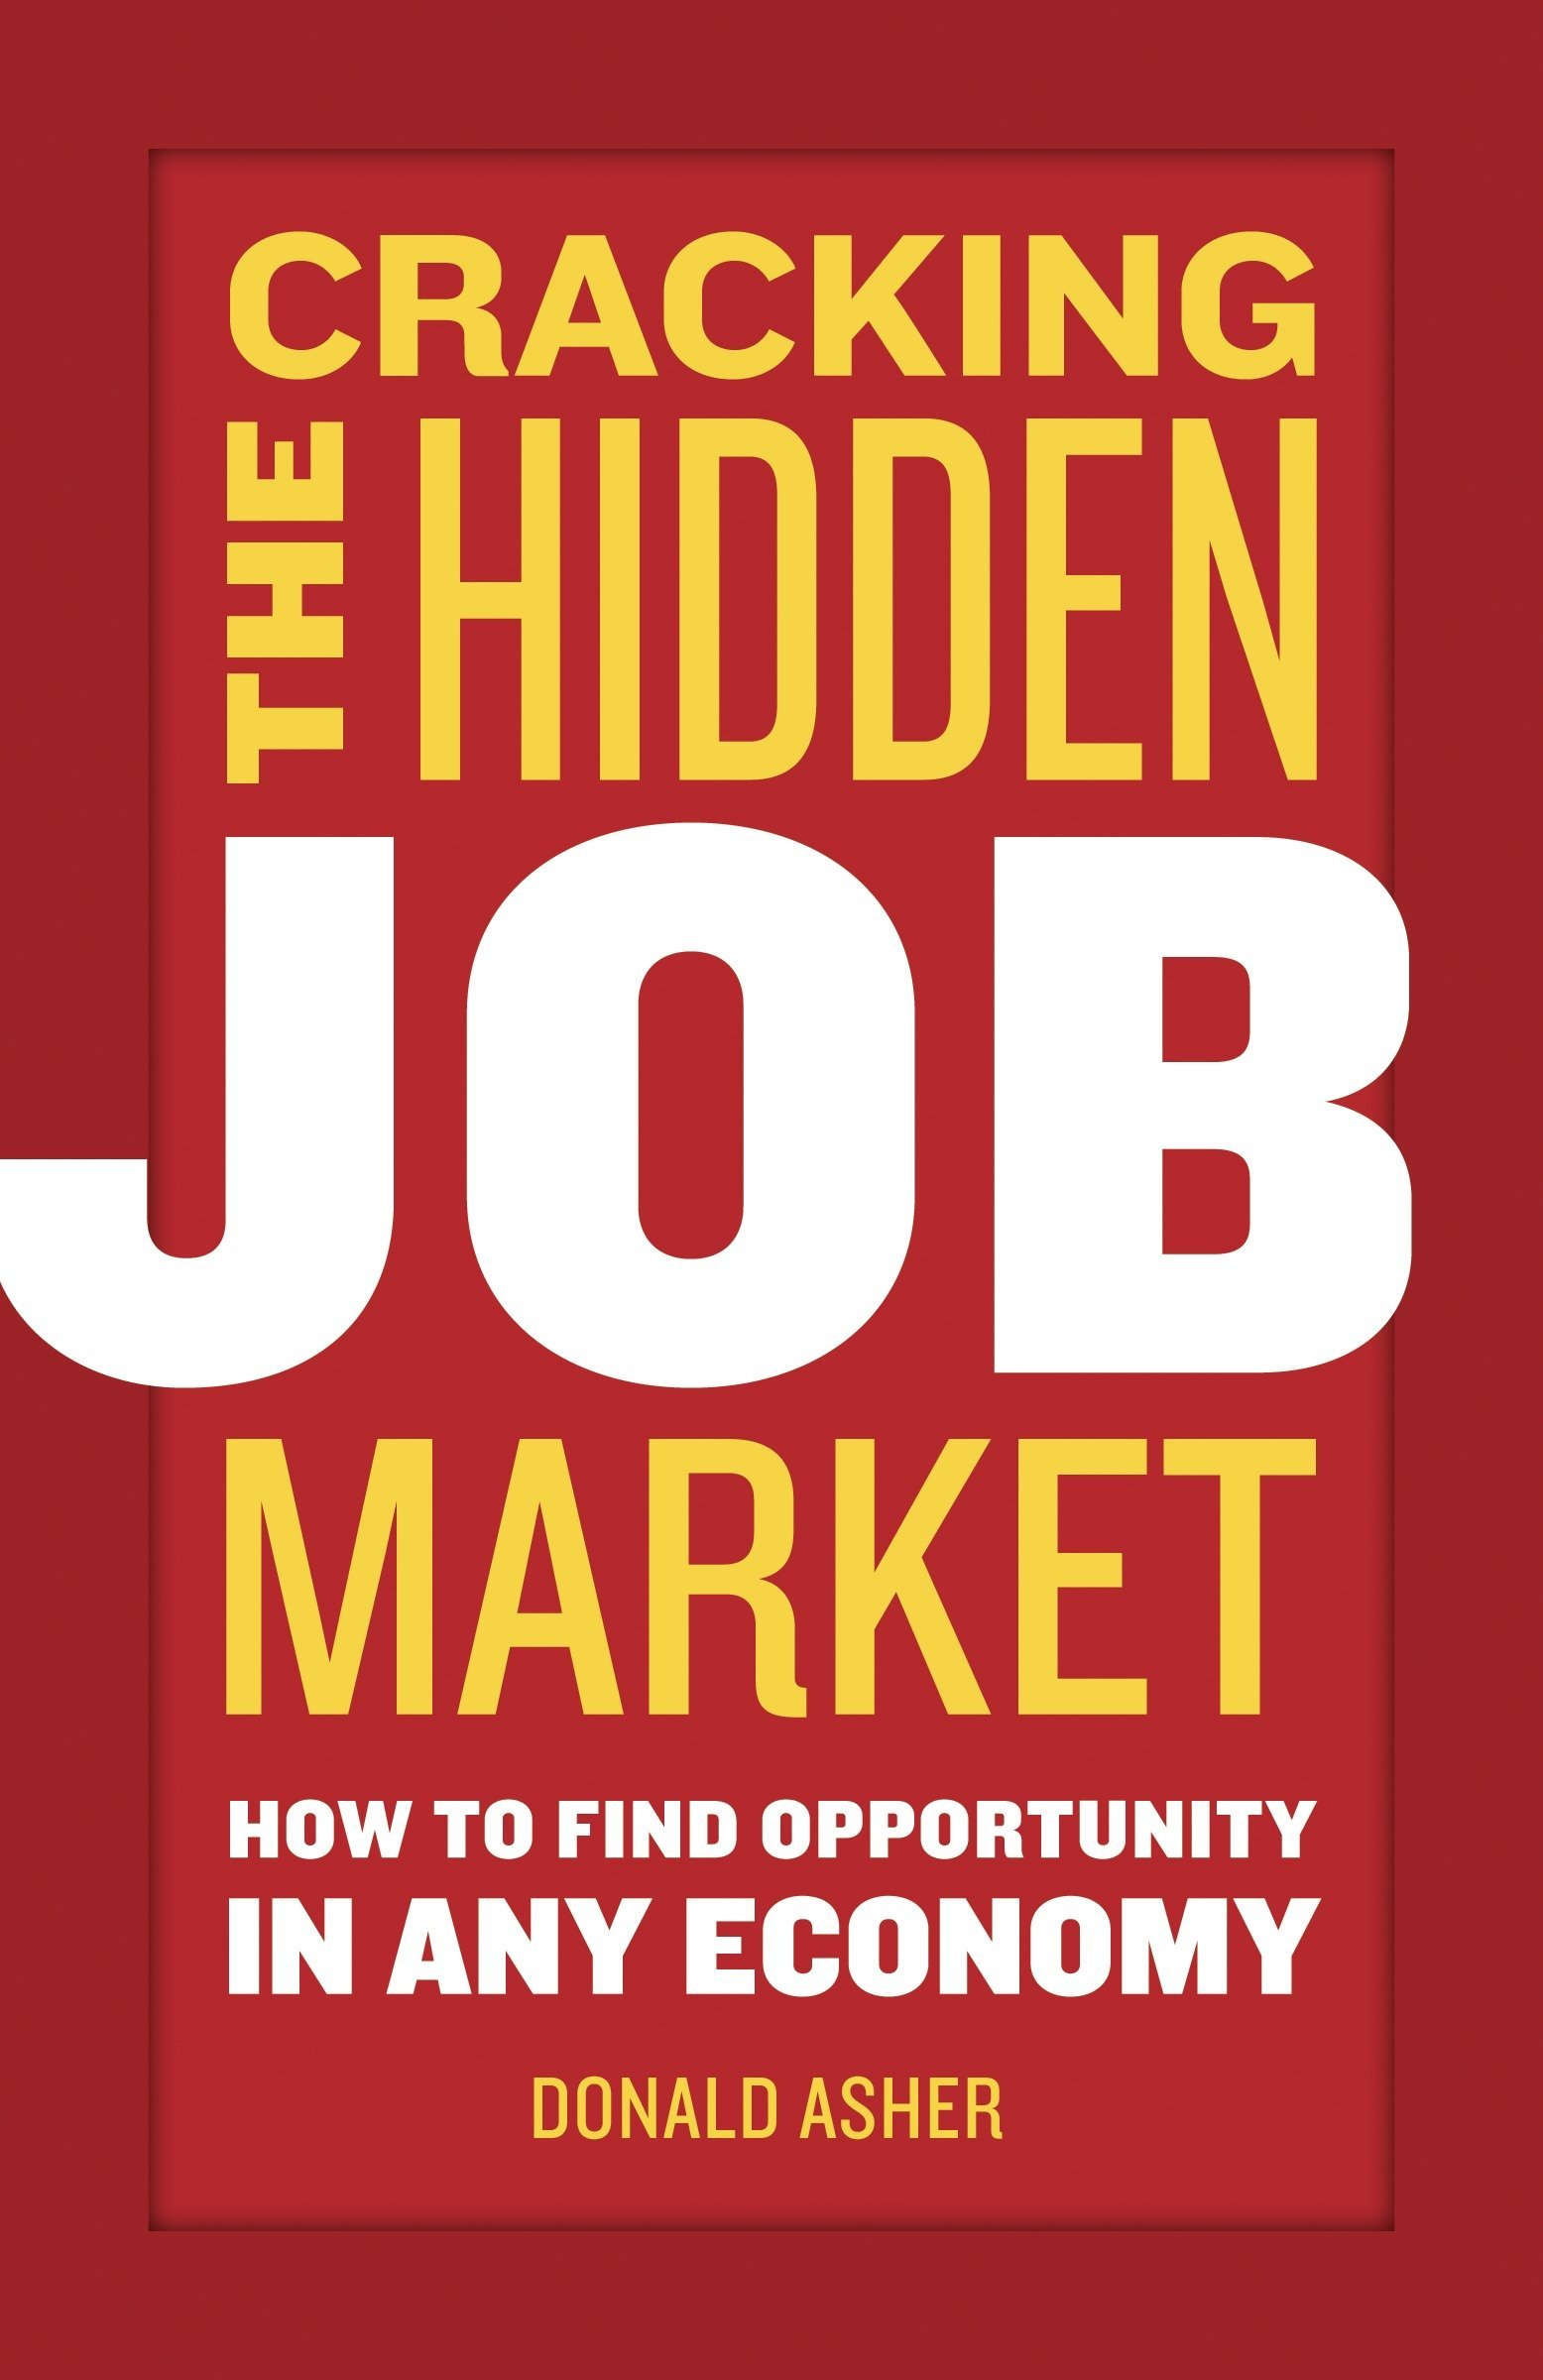 Cracking The Hidden Job Market: How to Find Opportunity in Any Economy PDF